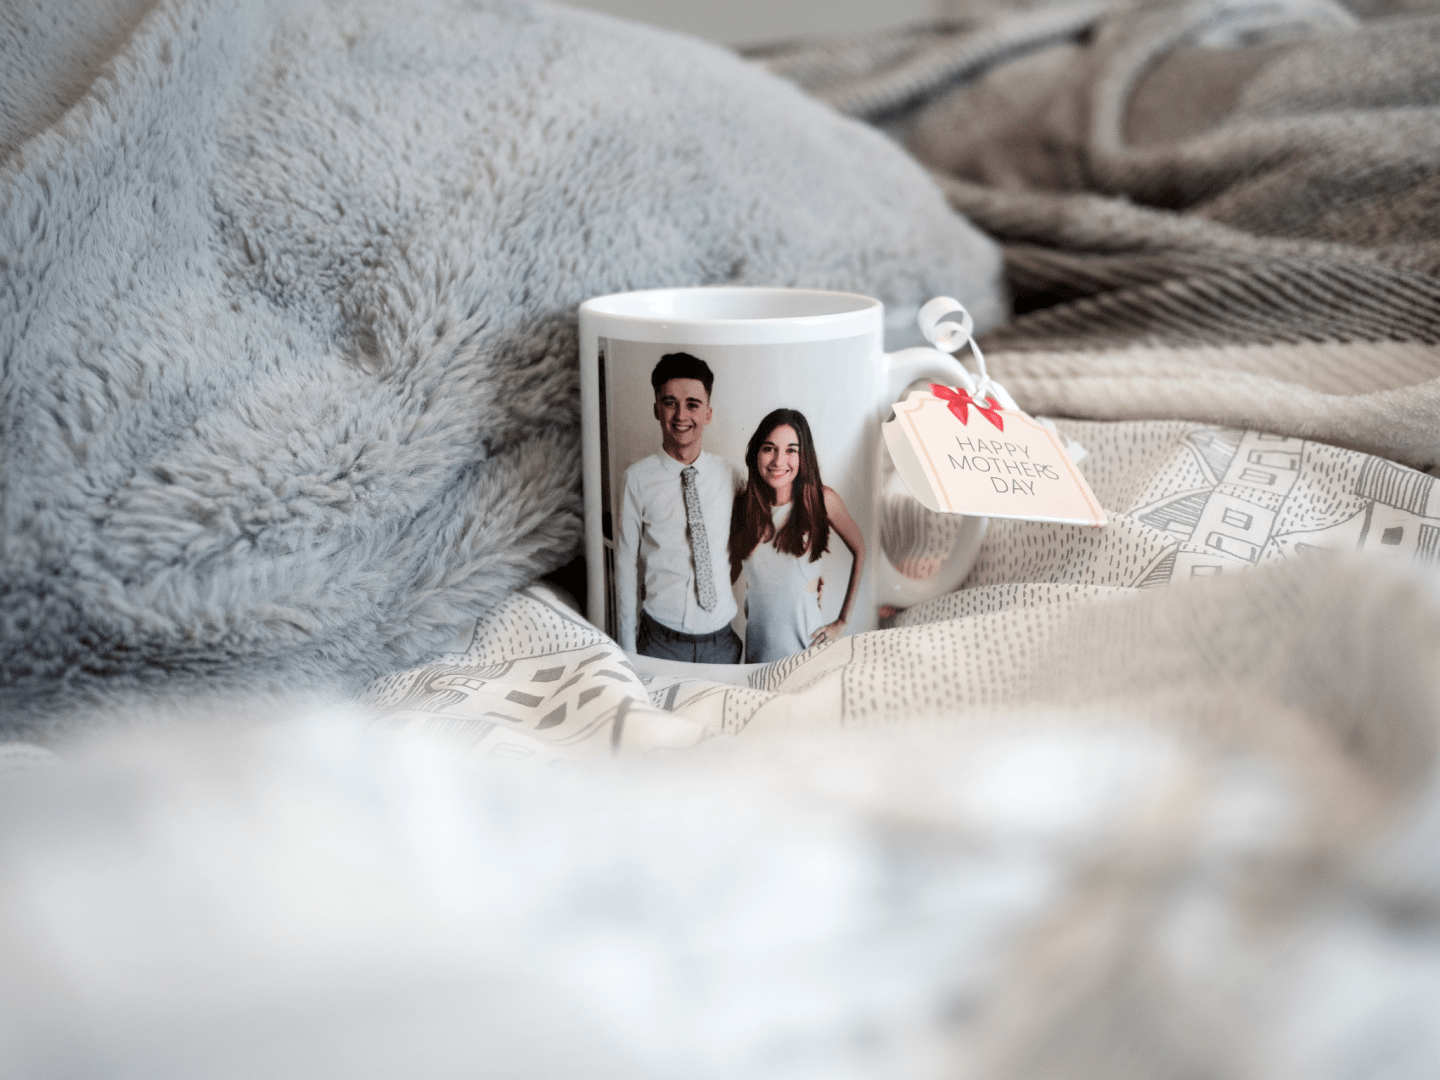 Personalised Mug from Snappysnaps is the perfect last minute Mother's Day gift | Hollie in Wanderlust